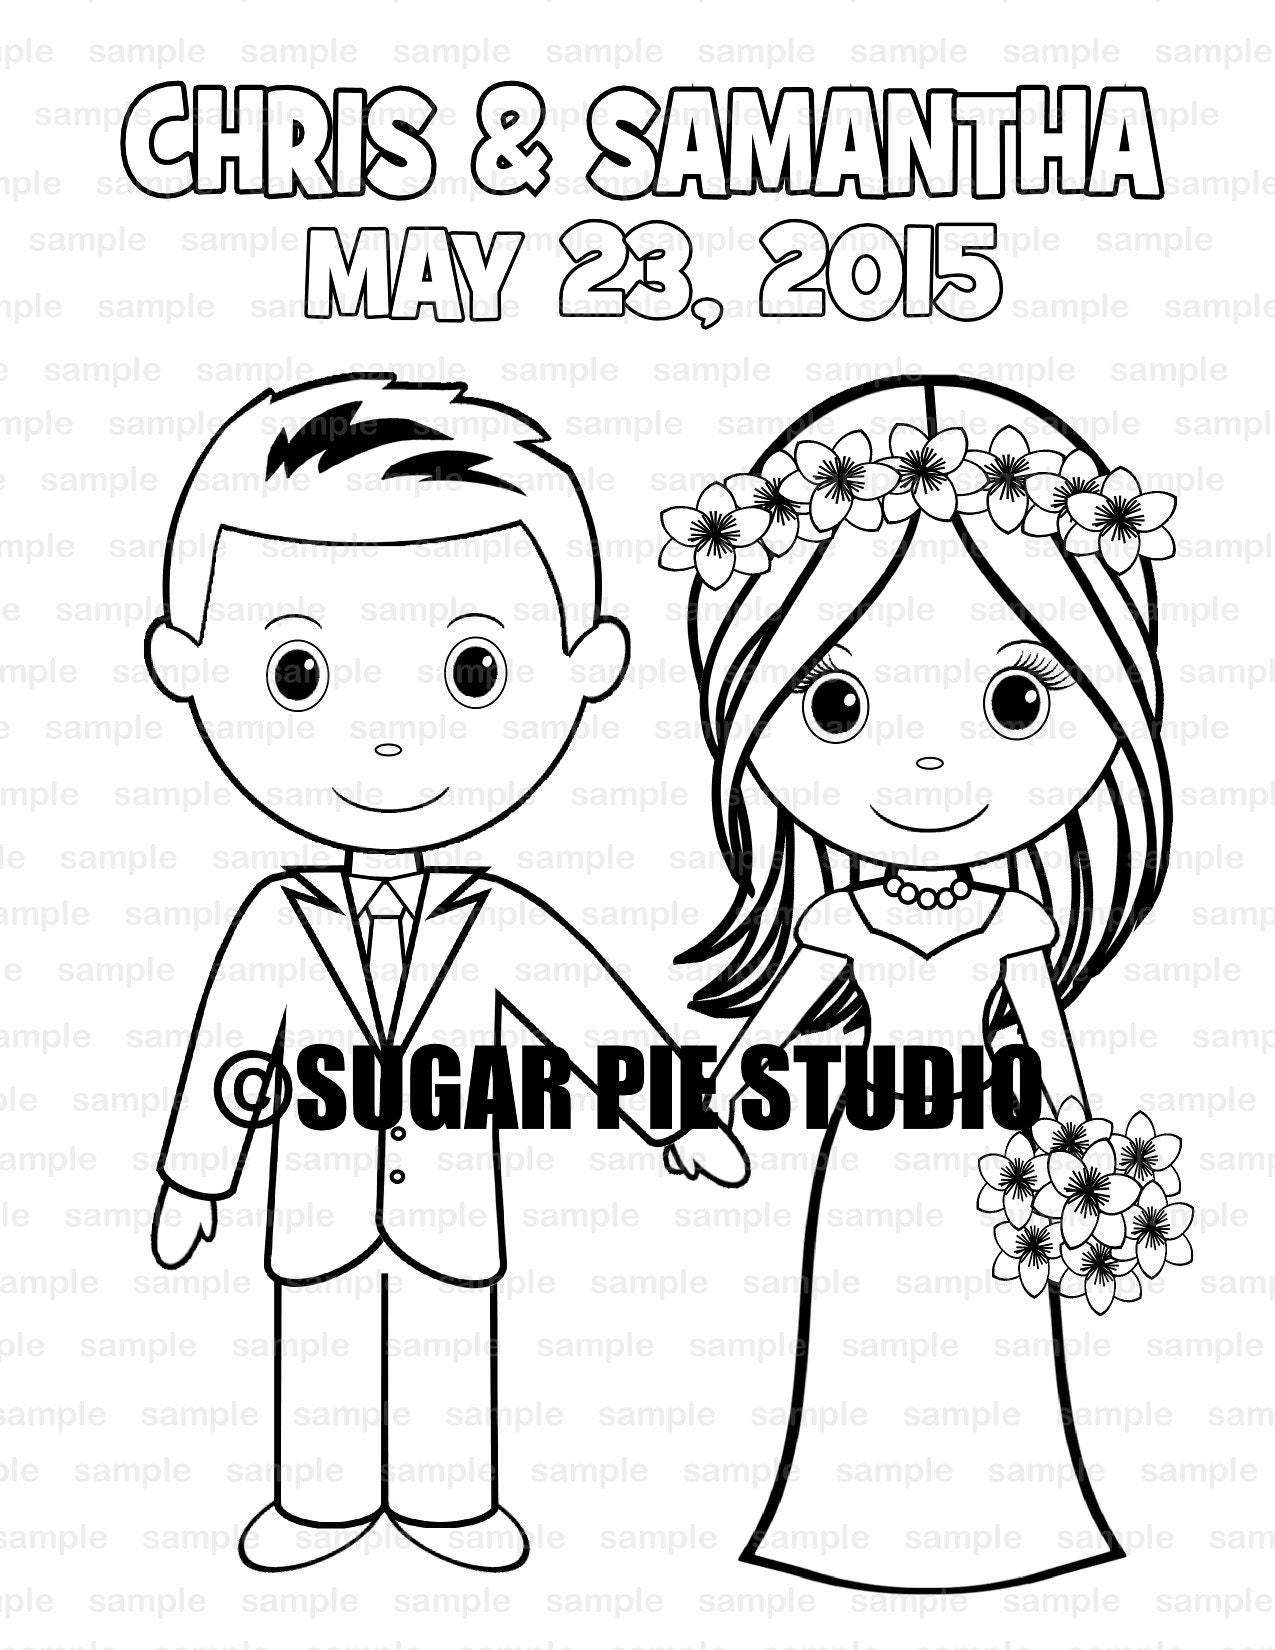 Wedding coloring book activity Favor Kids 8.5 x 11 PDF or | Etsy